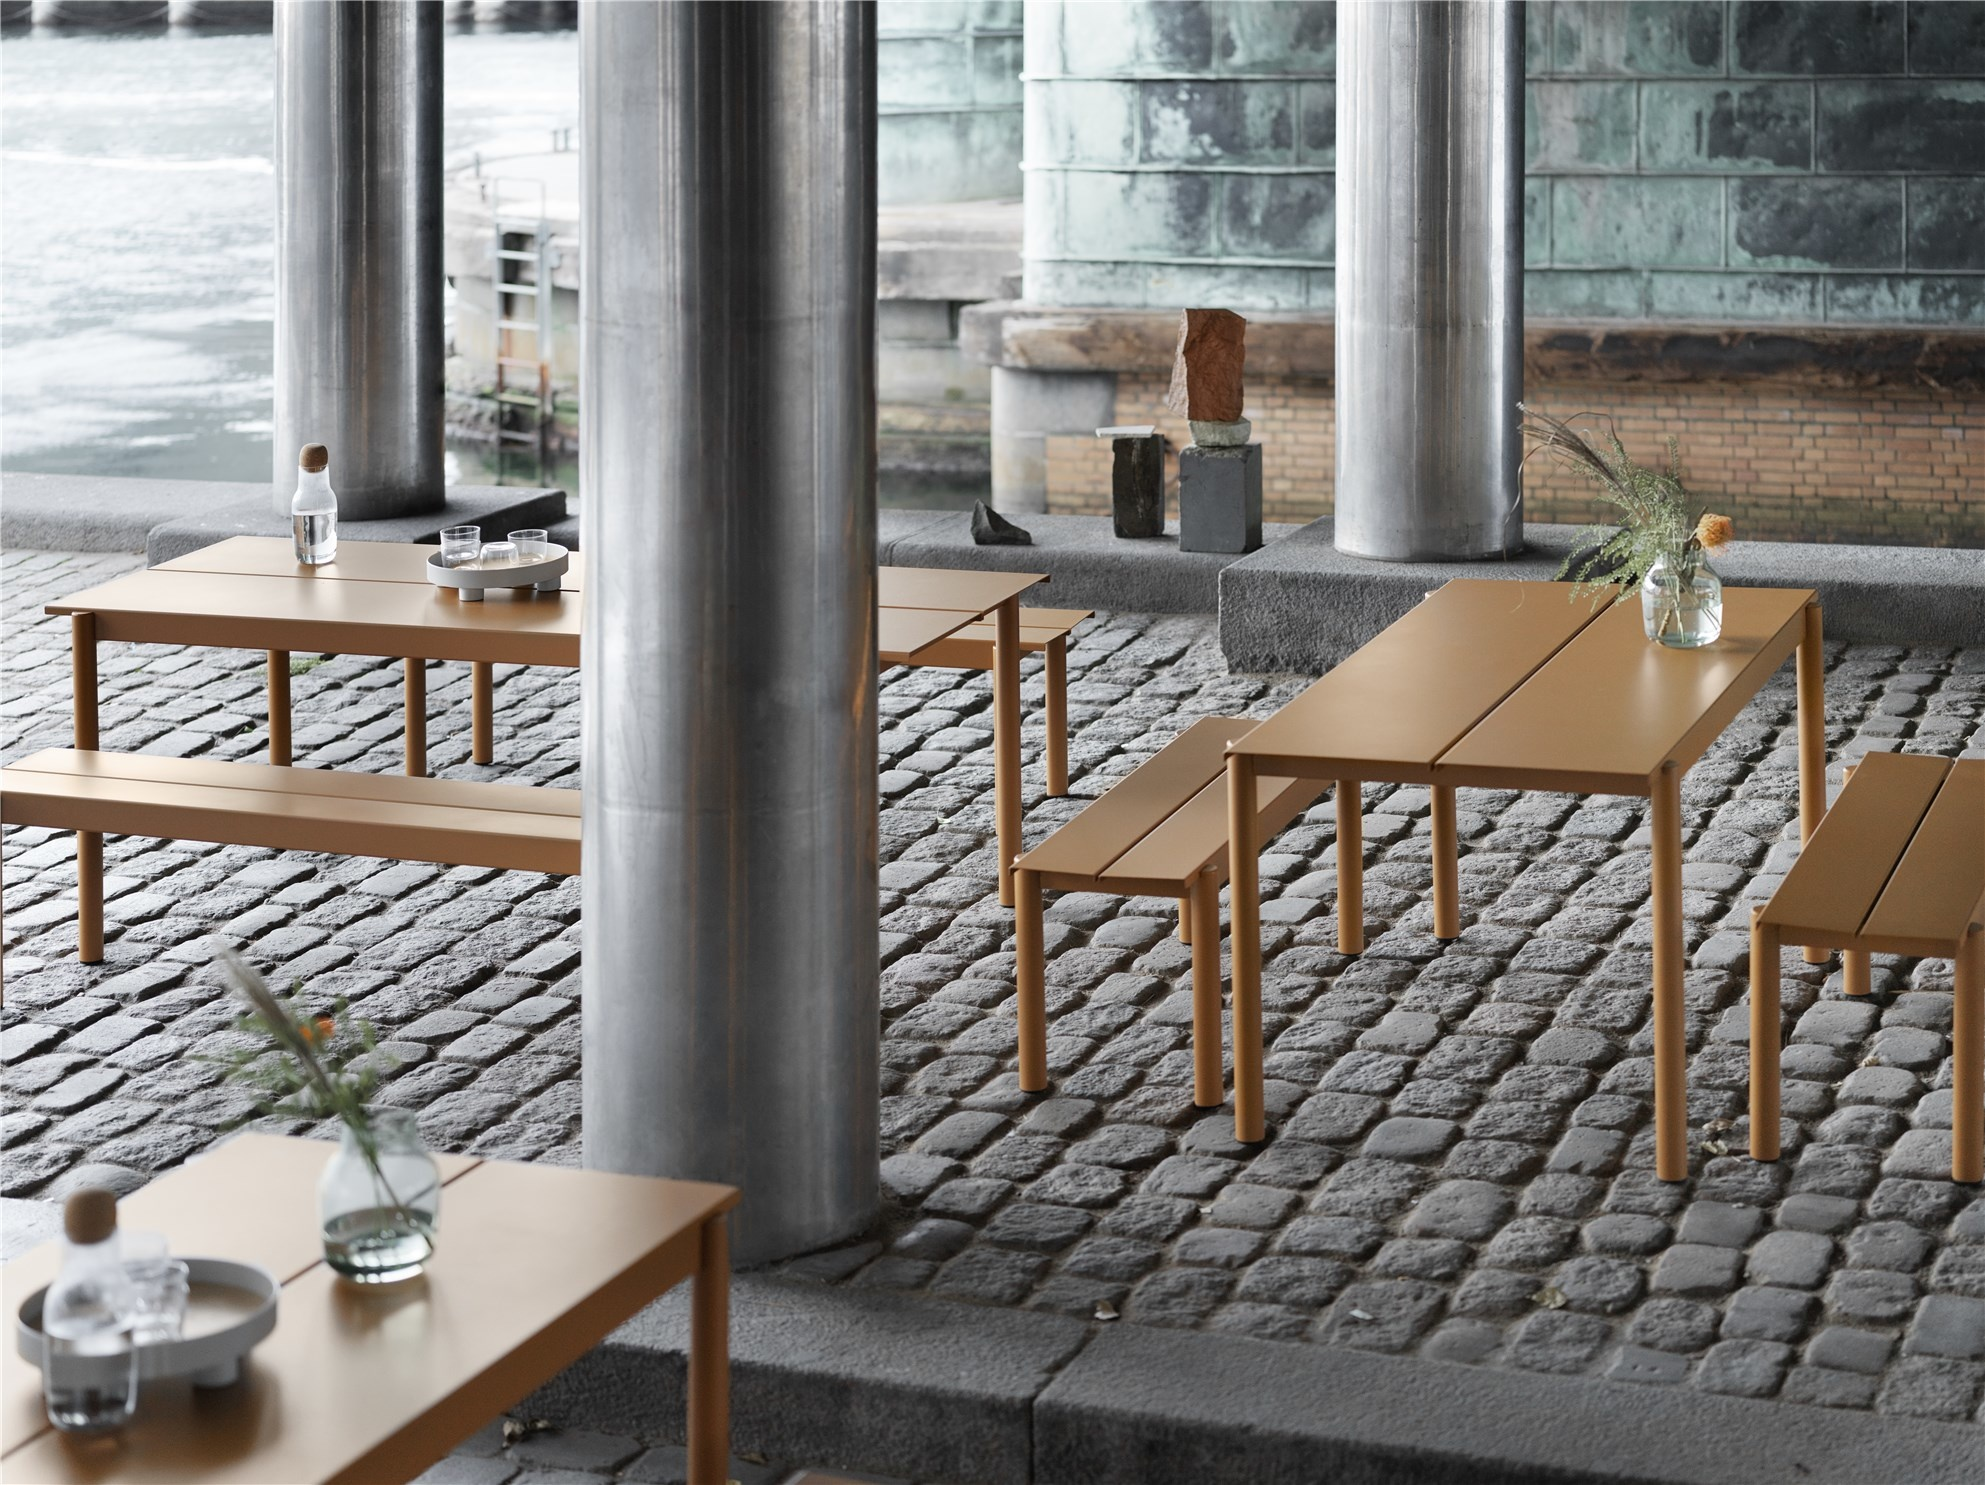 Muuto Linear set de jardin table 140x80 + 2 banques 110x34